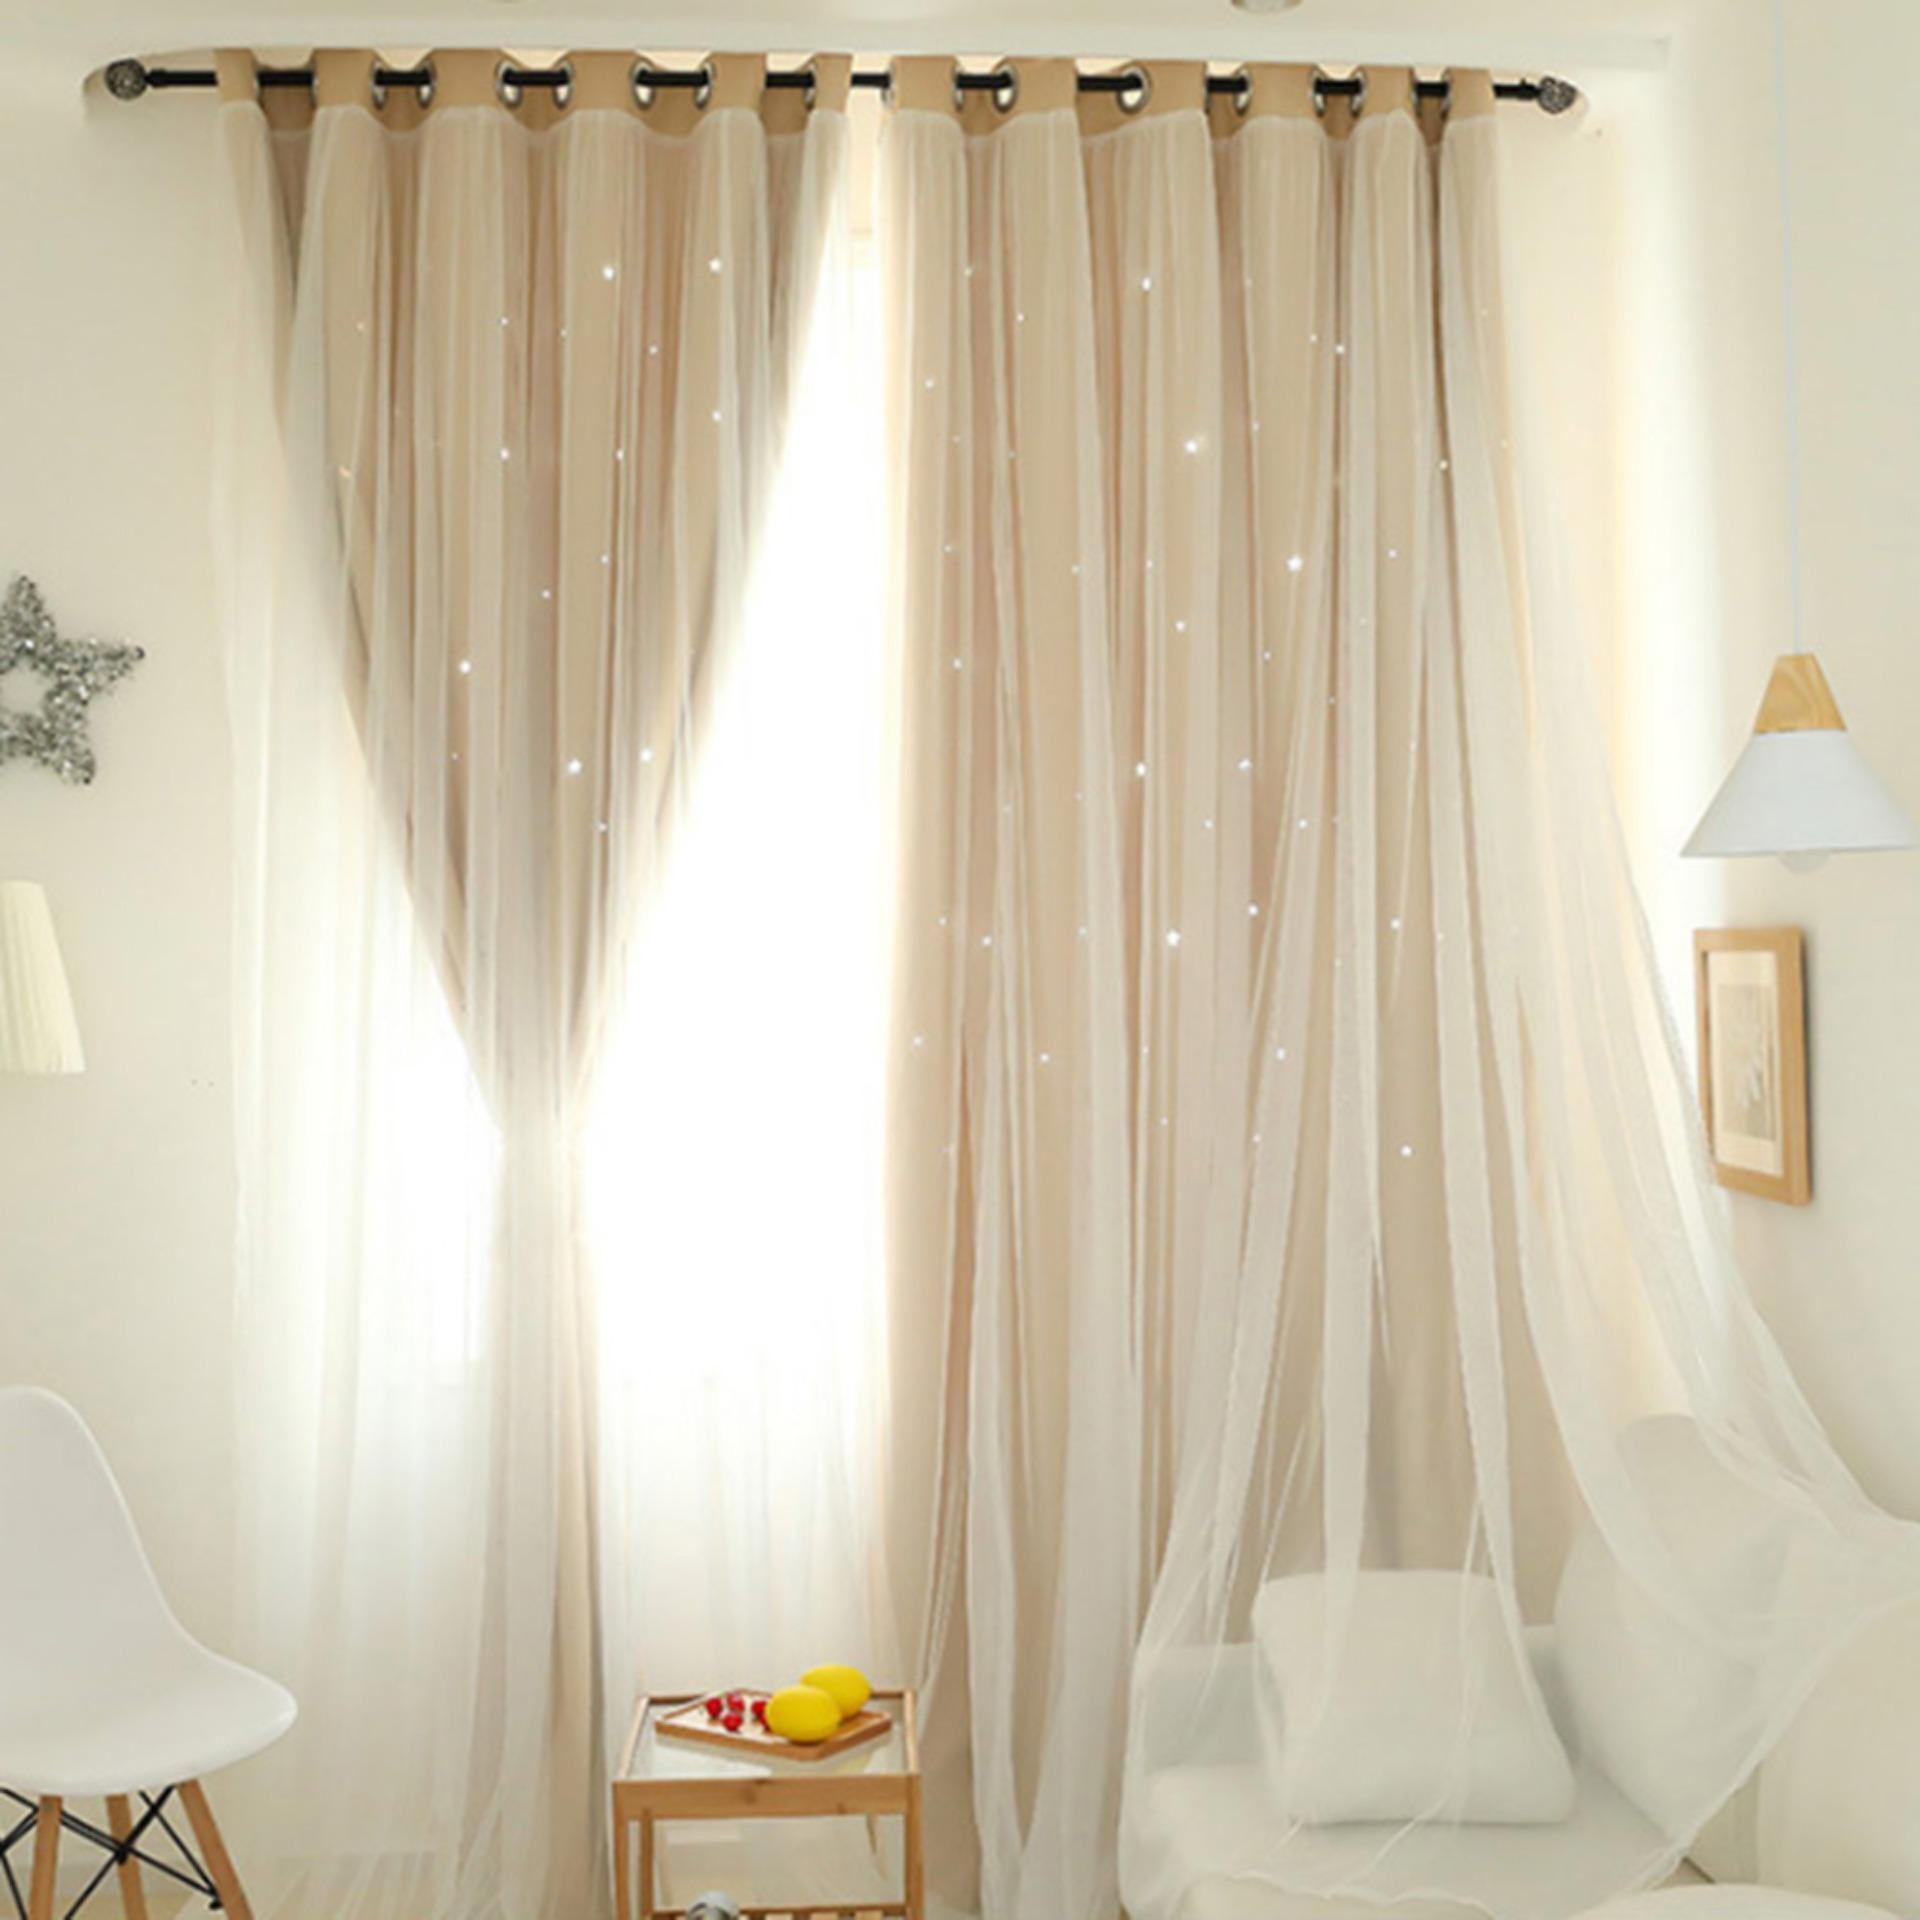 DomybestShop Hollowed Out Star Shading Window Curtain Drapes Purdah for Home Living Room Bedroom